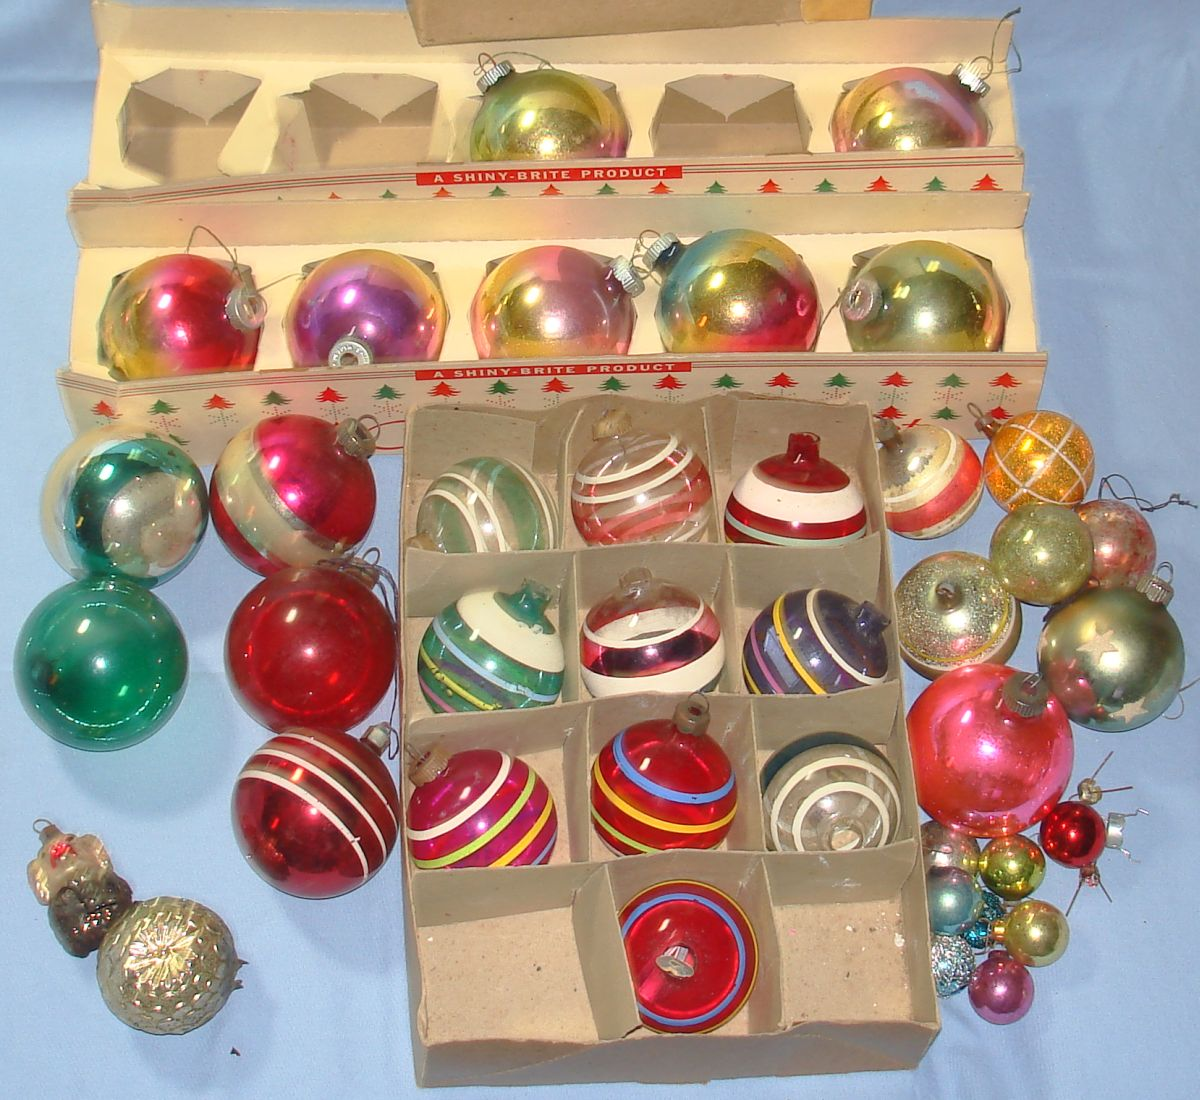 shiny brite ornaments image from vintagetoyscom